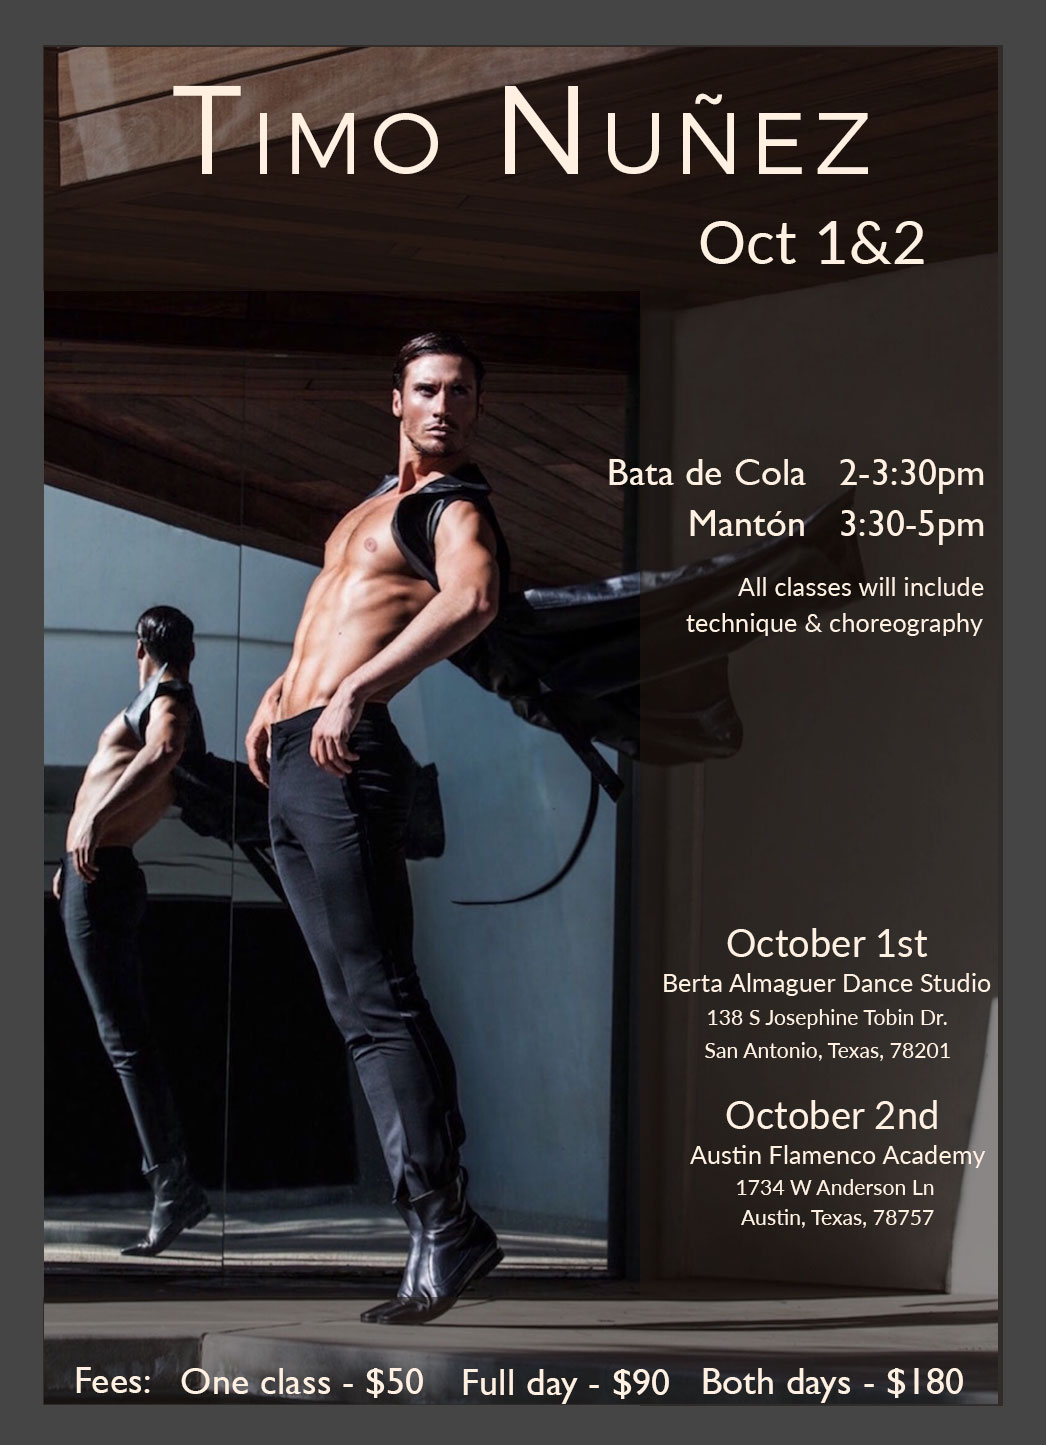 Exclusive flamenco dance workshops with Timo Nunez at the Austin Flamenco Academy